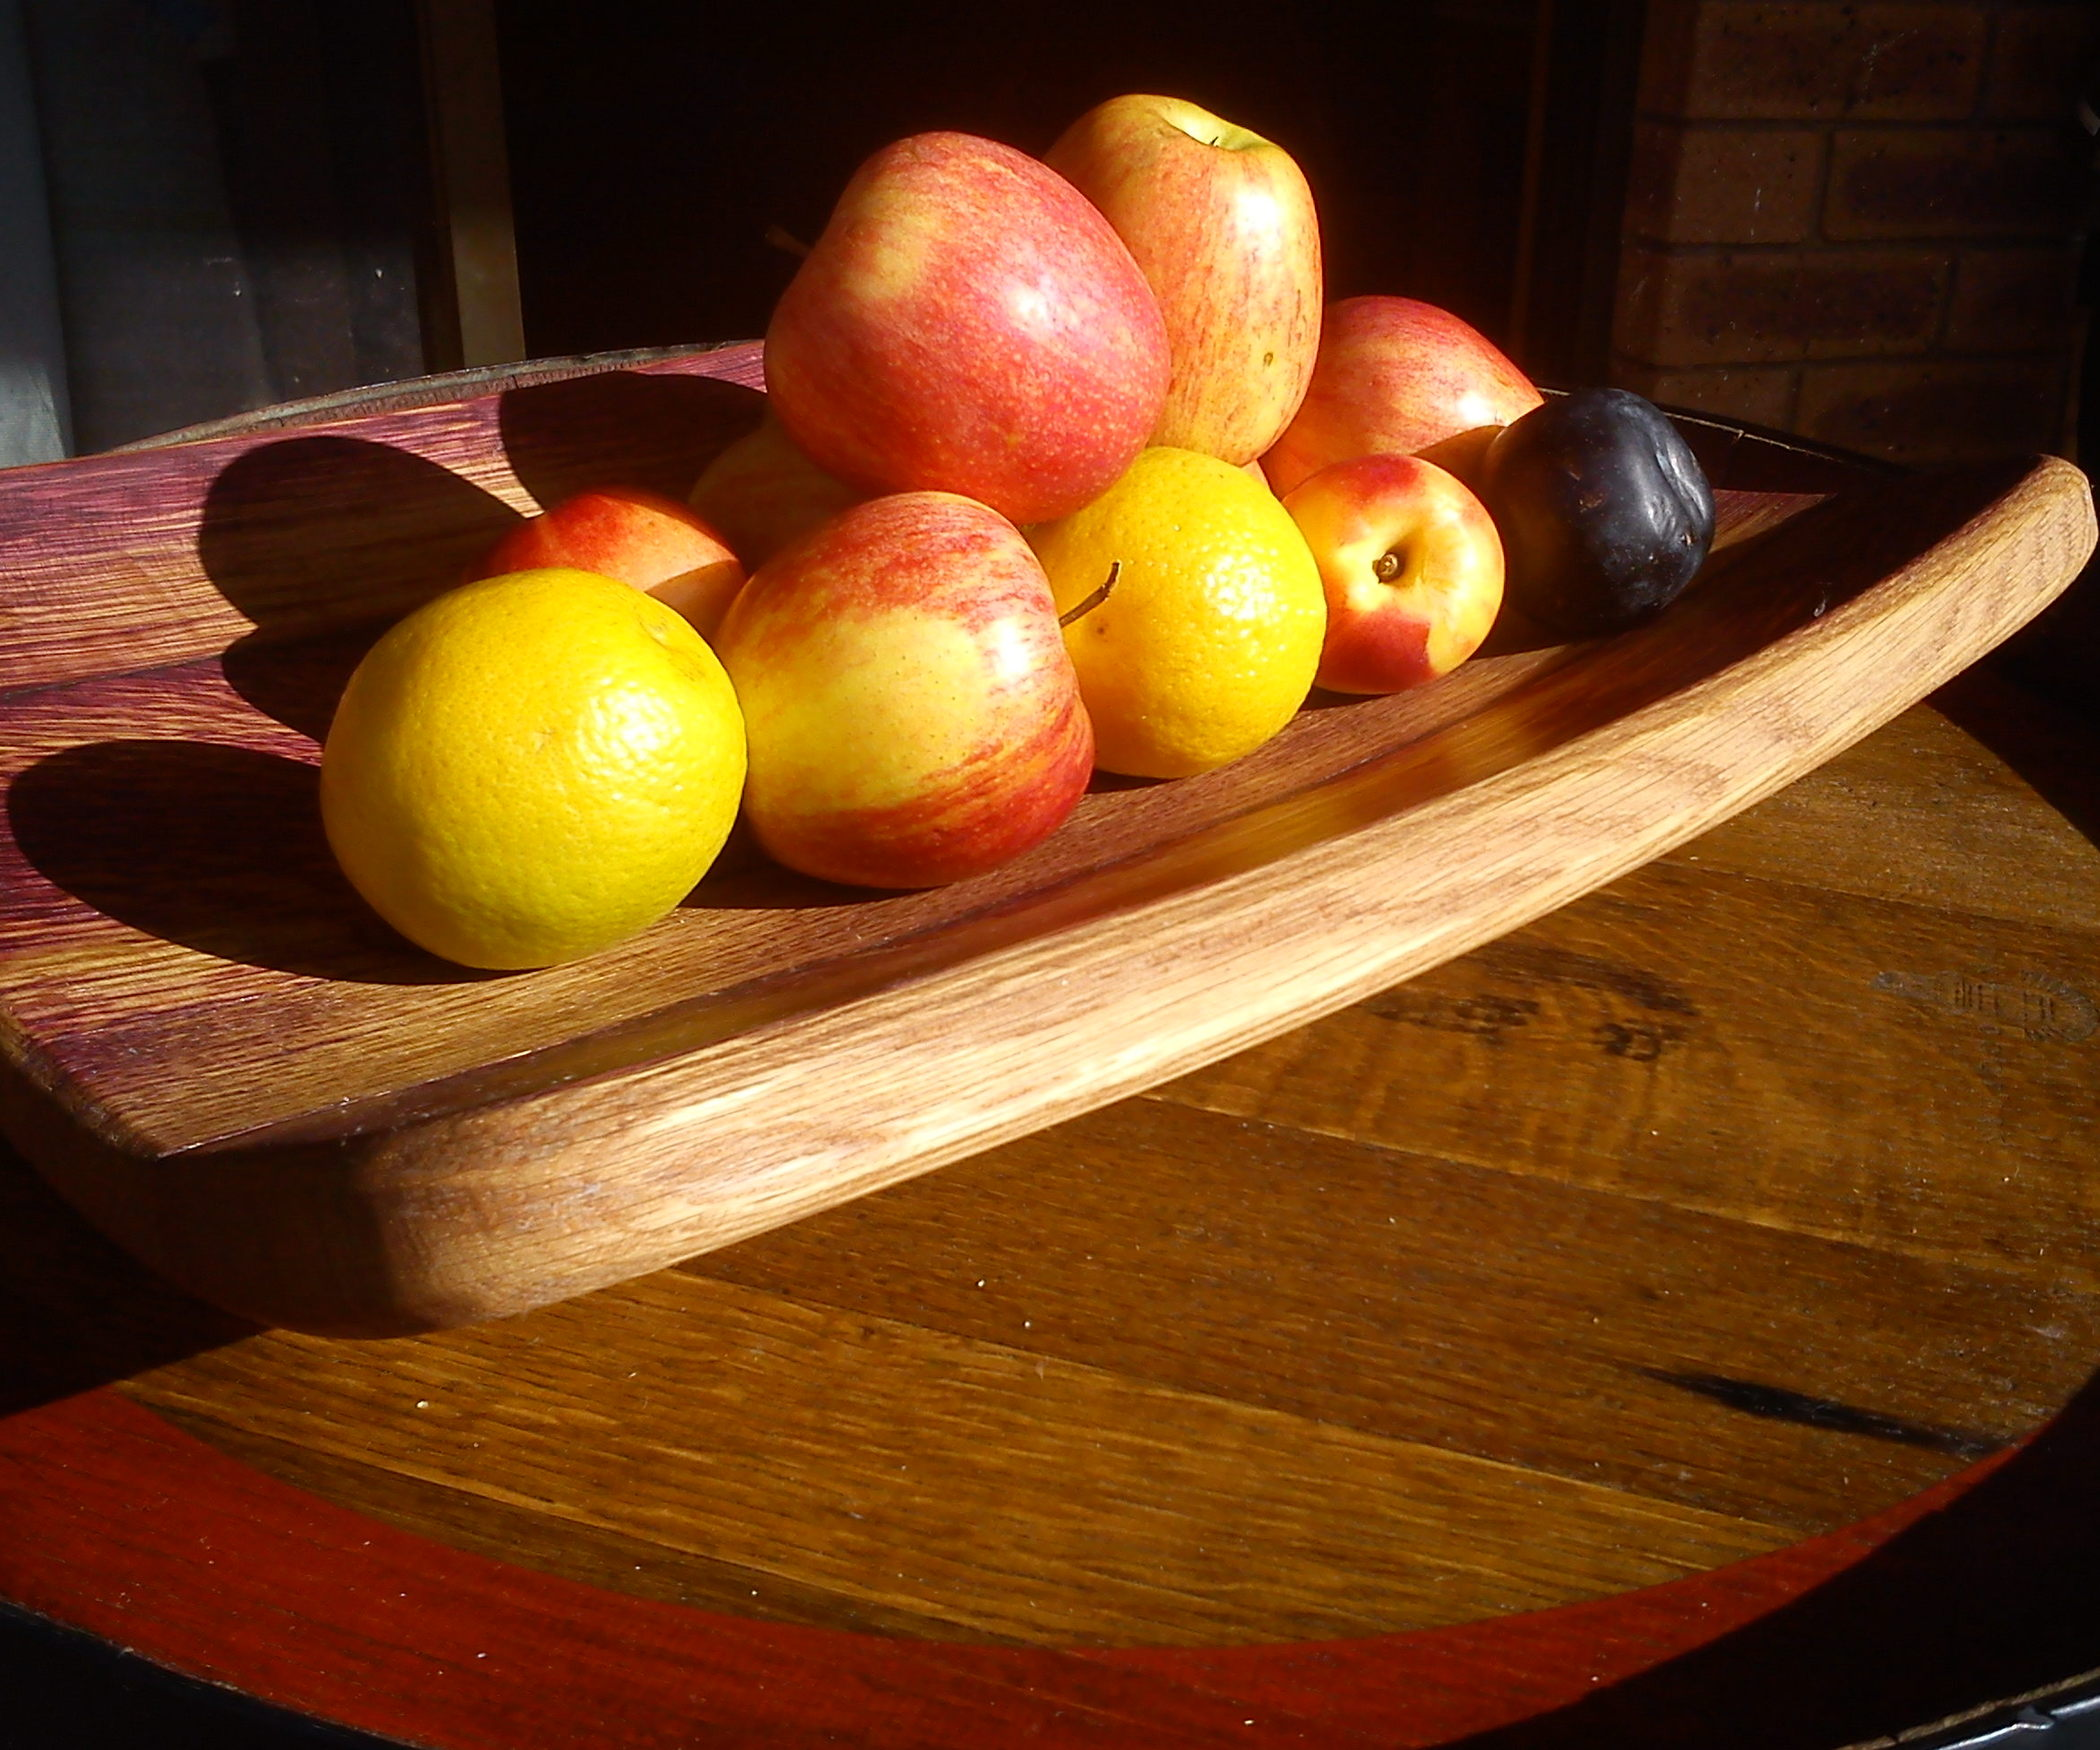 Fruit bowl on a table